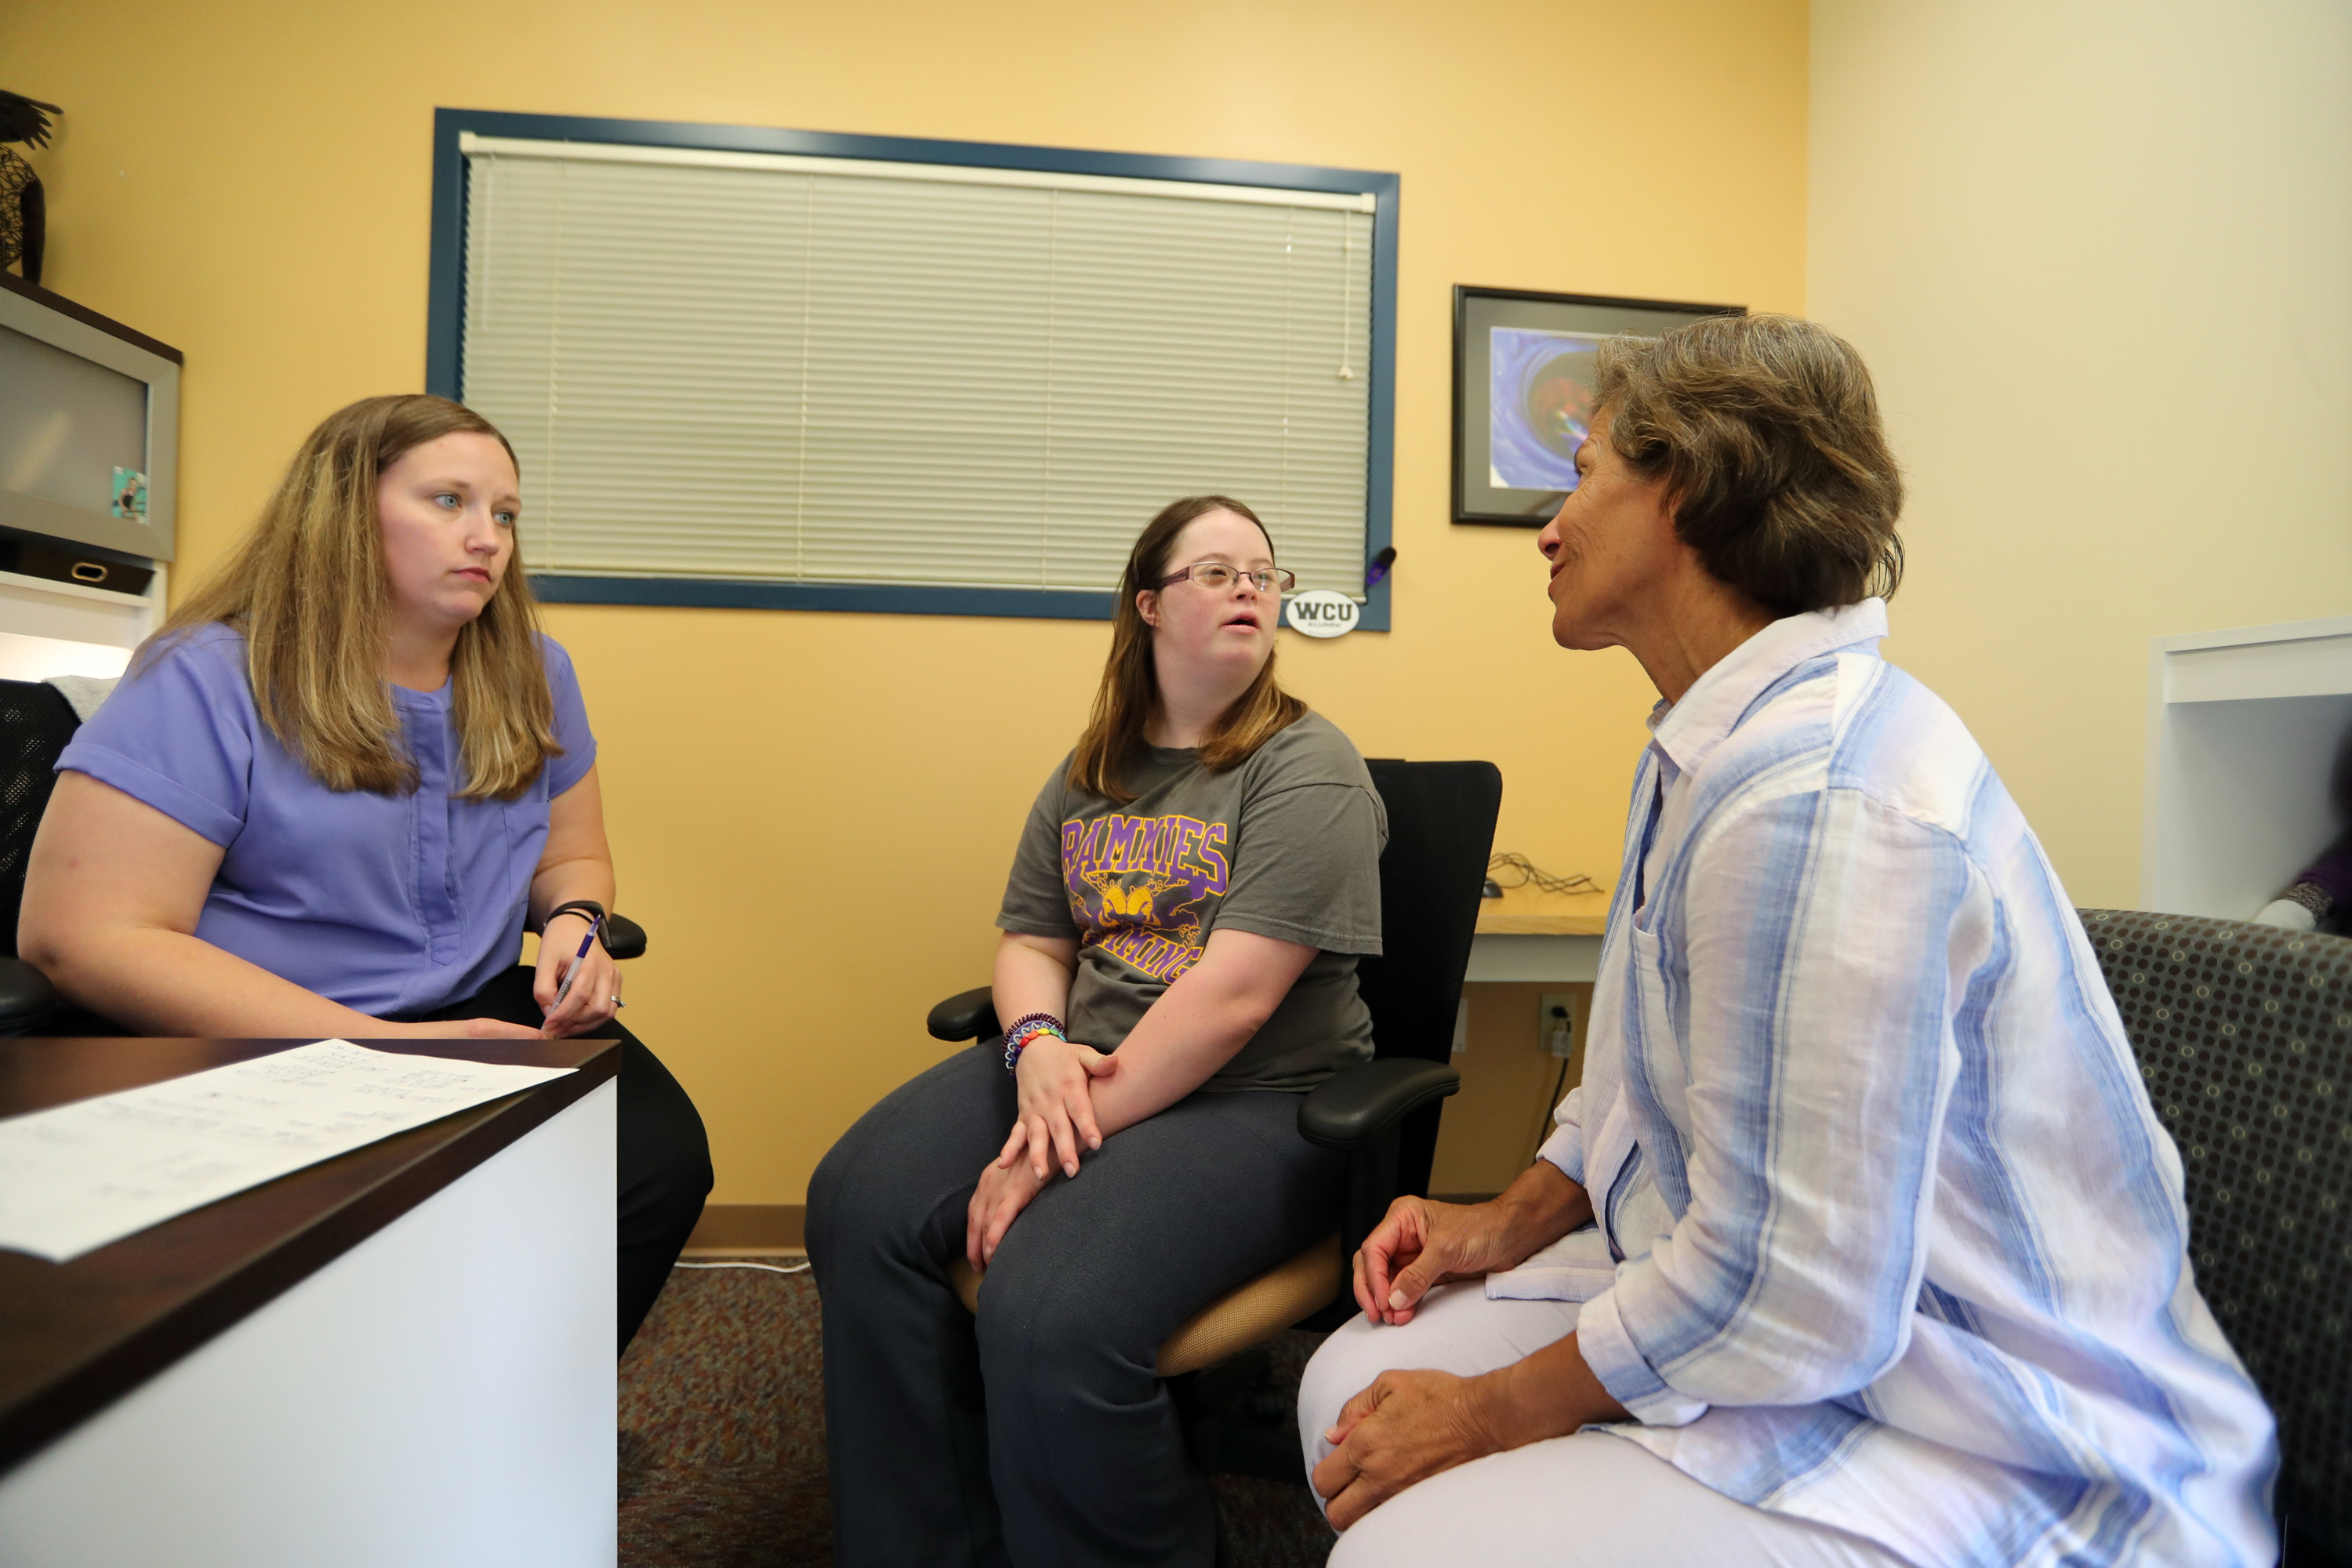 Professor Monica Lepore (right) talks to Emily Scott (center) and Emily´s adviser Courtney Lloyd about orientation.